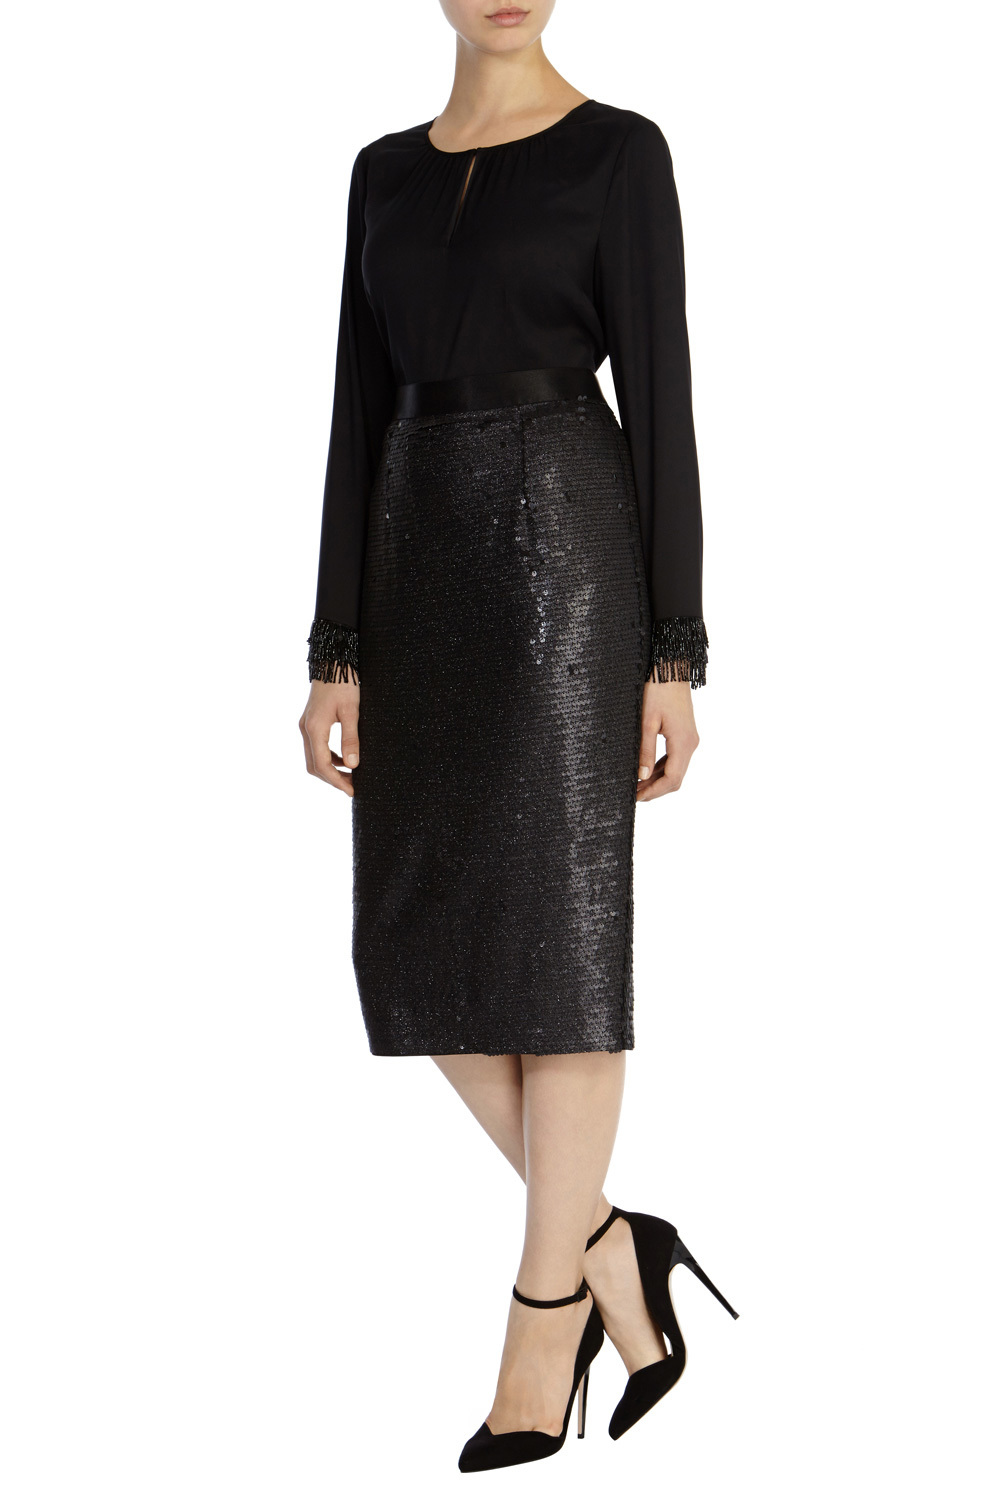 Ashlynne Sequin Skirt - length: below the knee; pattern: plain; style: pencil; fit: tailored/fitted; waist: high rise; predominant colour: black; occasions: occasion; texture group: woven light midweight; embellishment: sequins; season: a/w 2015